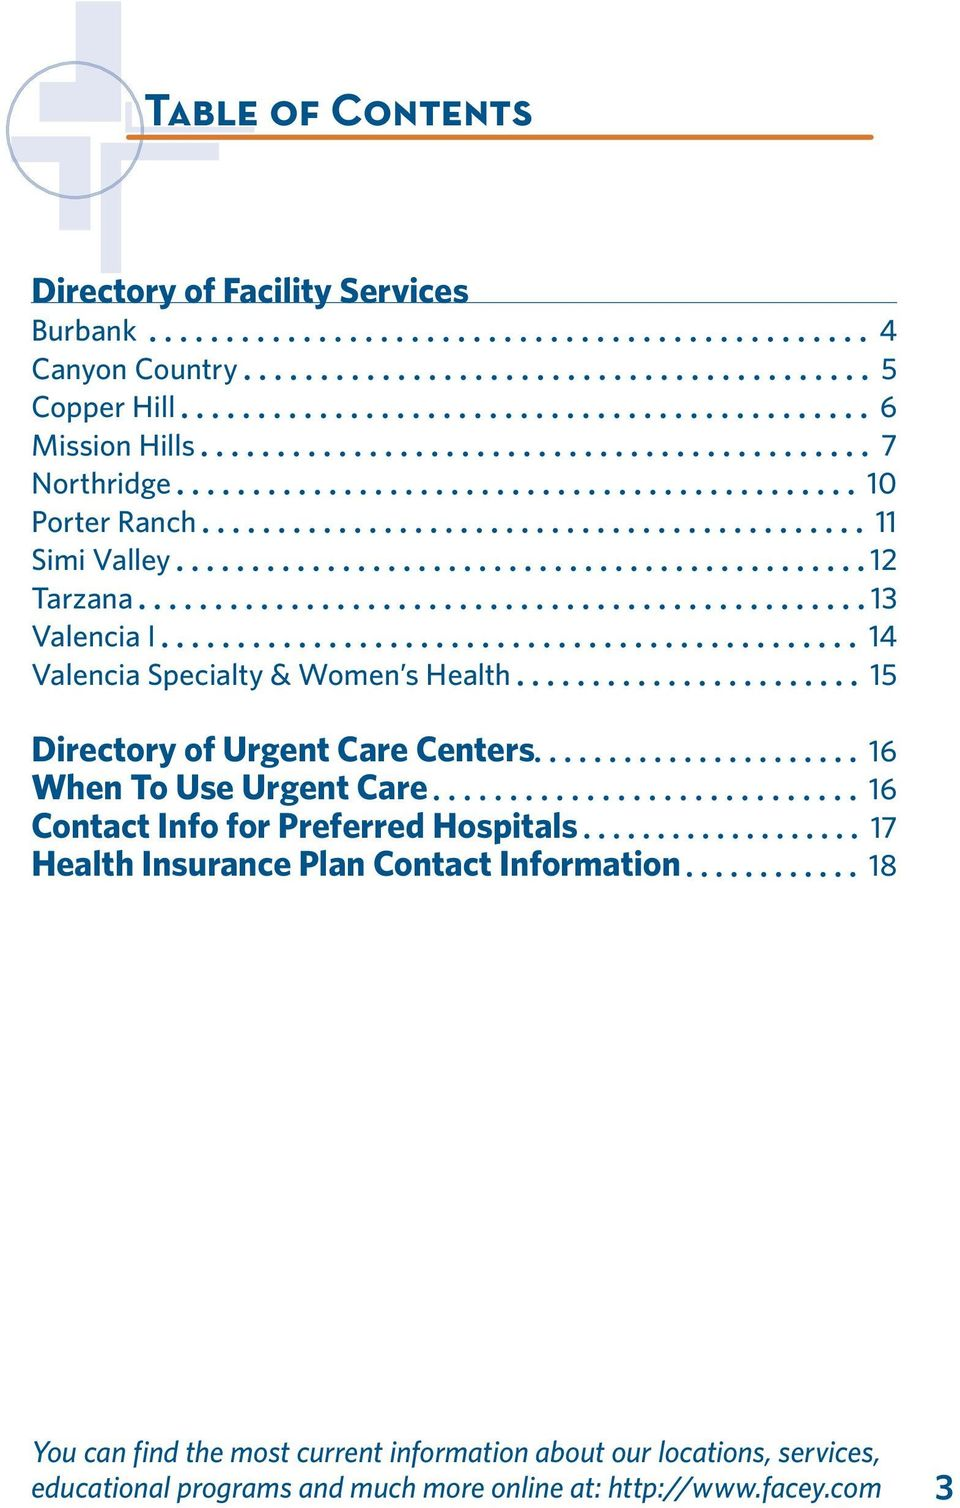 OUR LOCATIONS & SERVICES - PDF